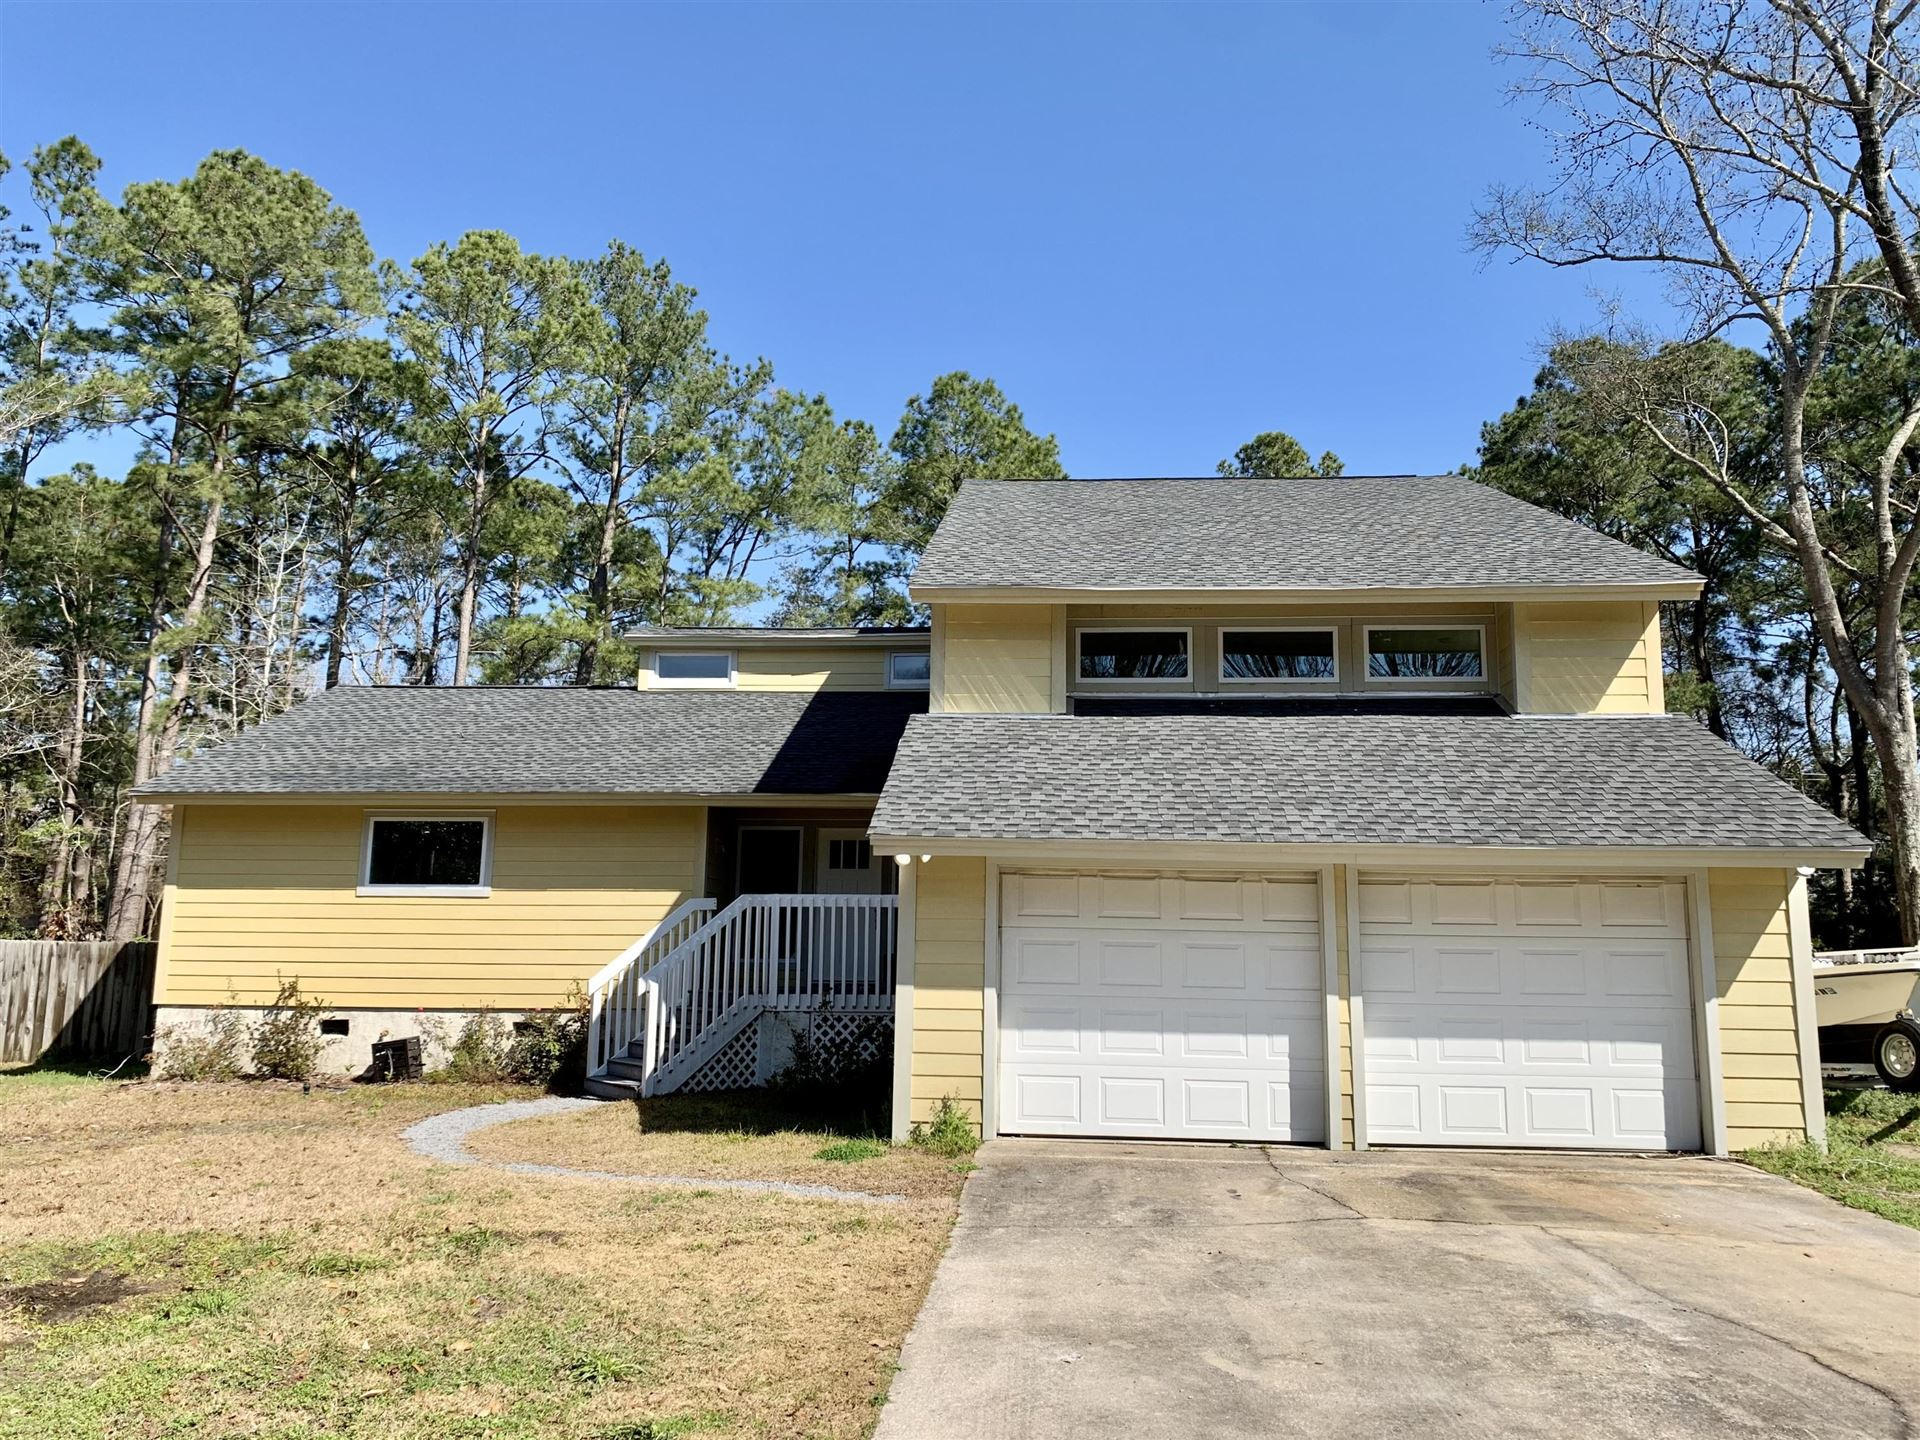 Photo of 1516 Sanford Road, Charleston, SC 29407 (MLS # 21004829)